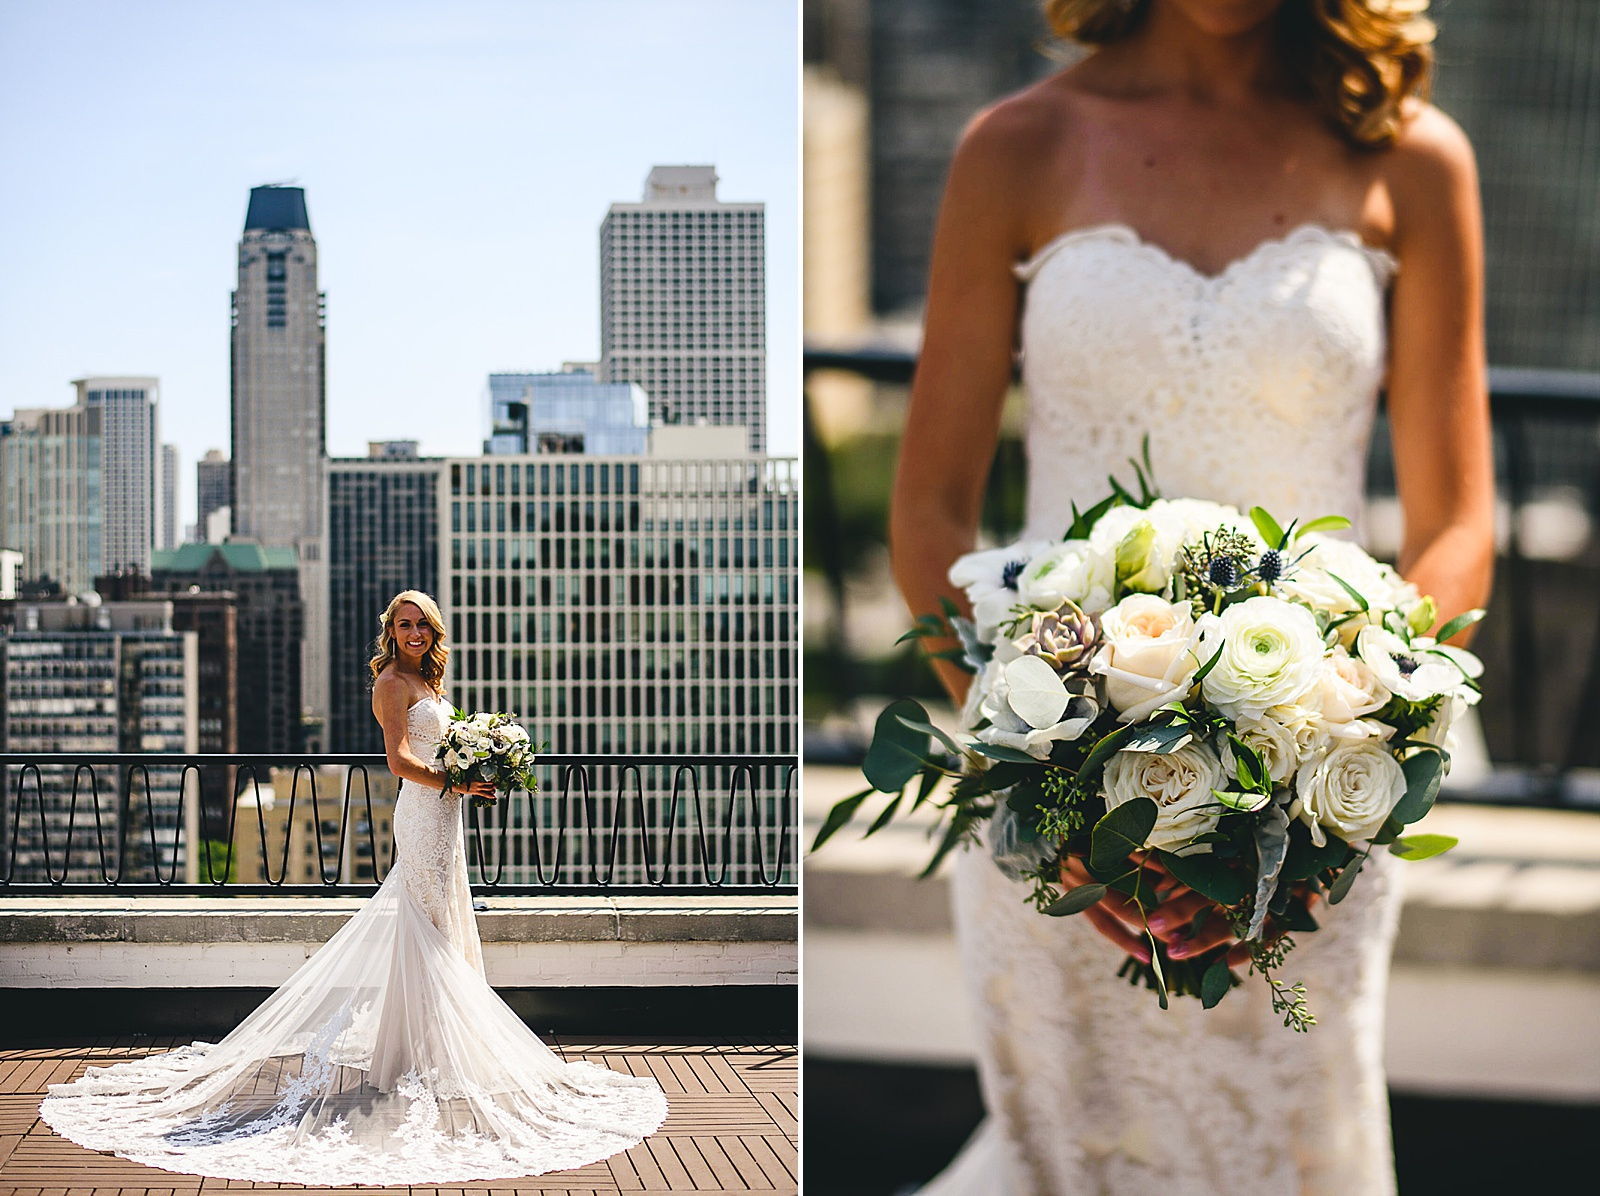 21 bride details ambassador hotel in chicago - Audrey + Jake's Beautiful Chicago Wedding at Chez